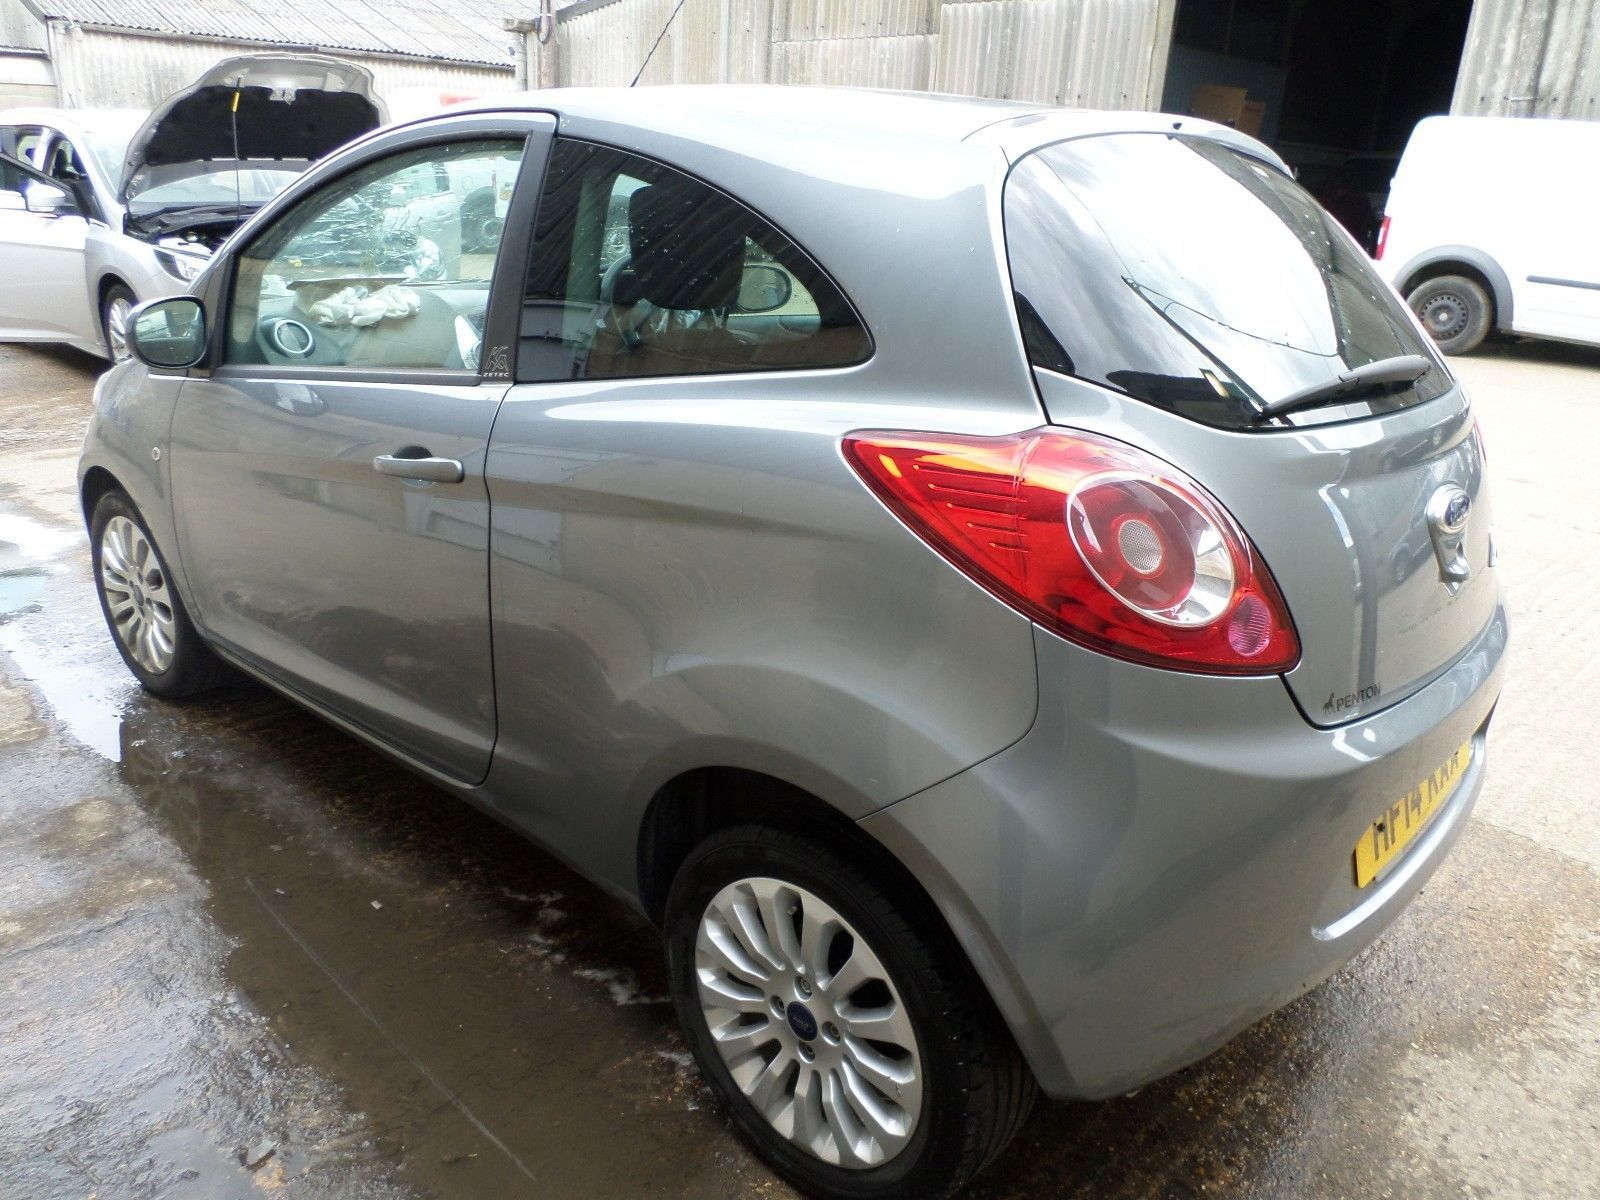 Ebay 2014 14 Ford Ka Zetec Grey Hpi Clear 20 000 Miles Damaged